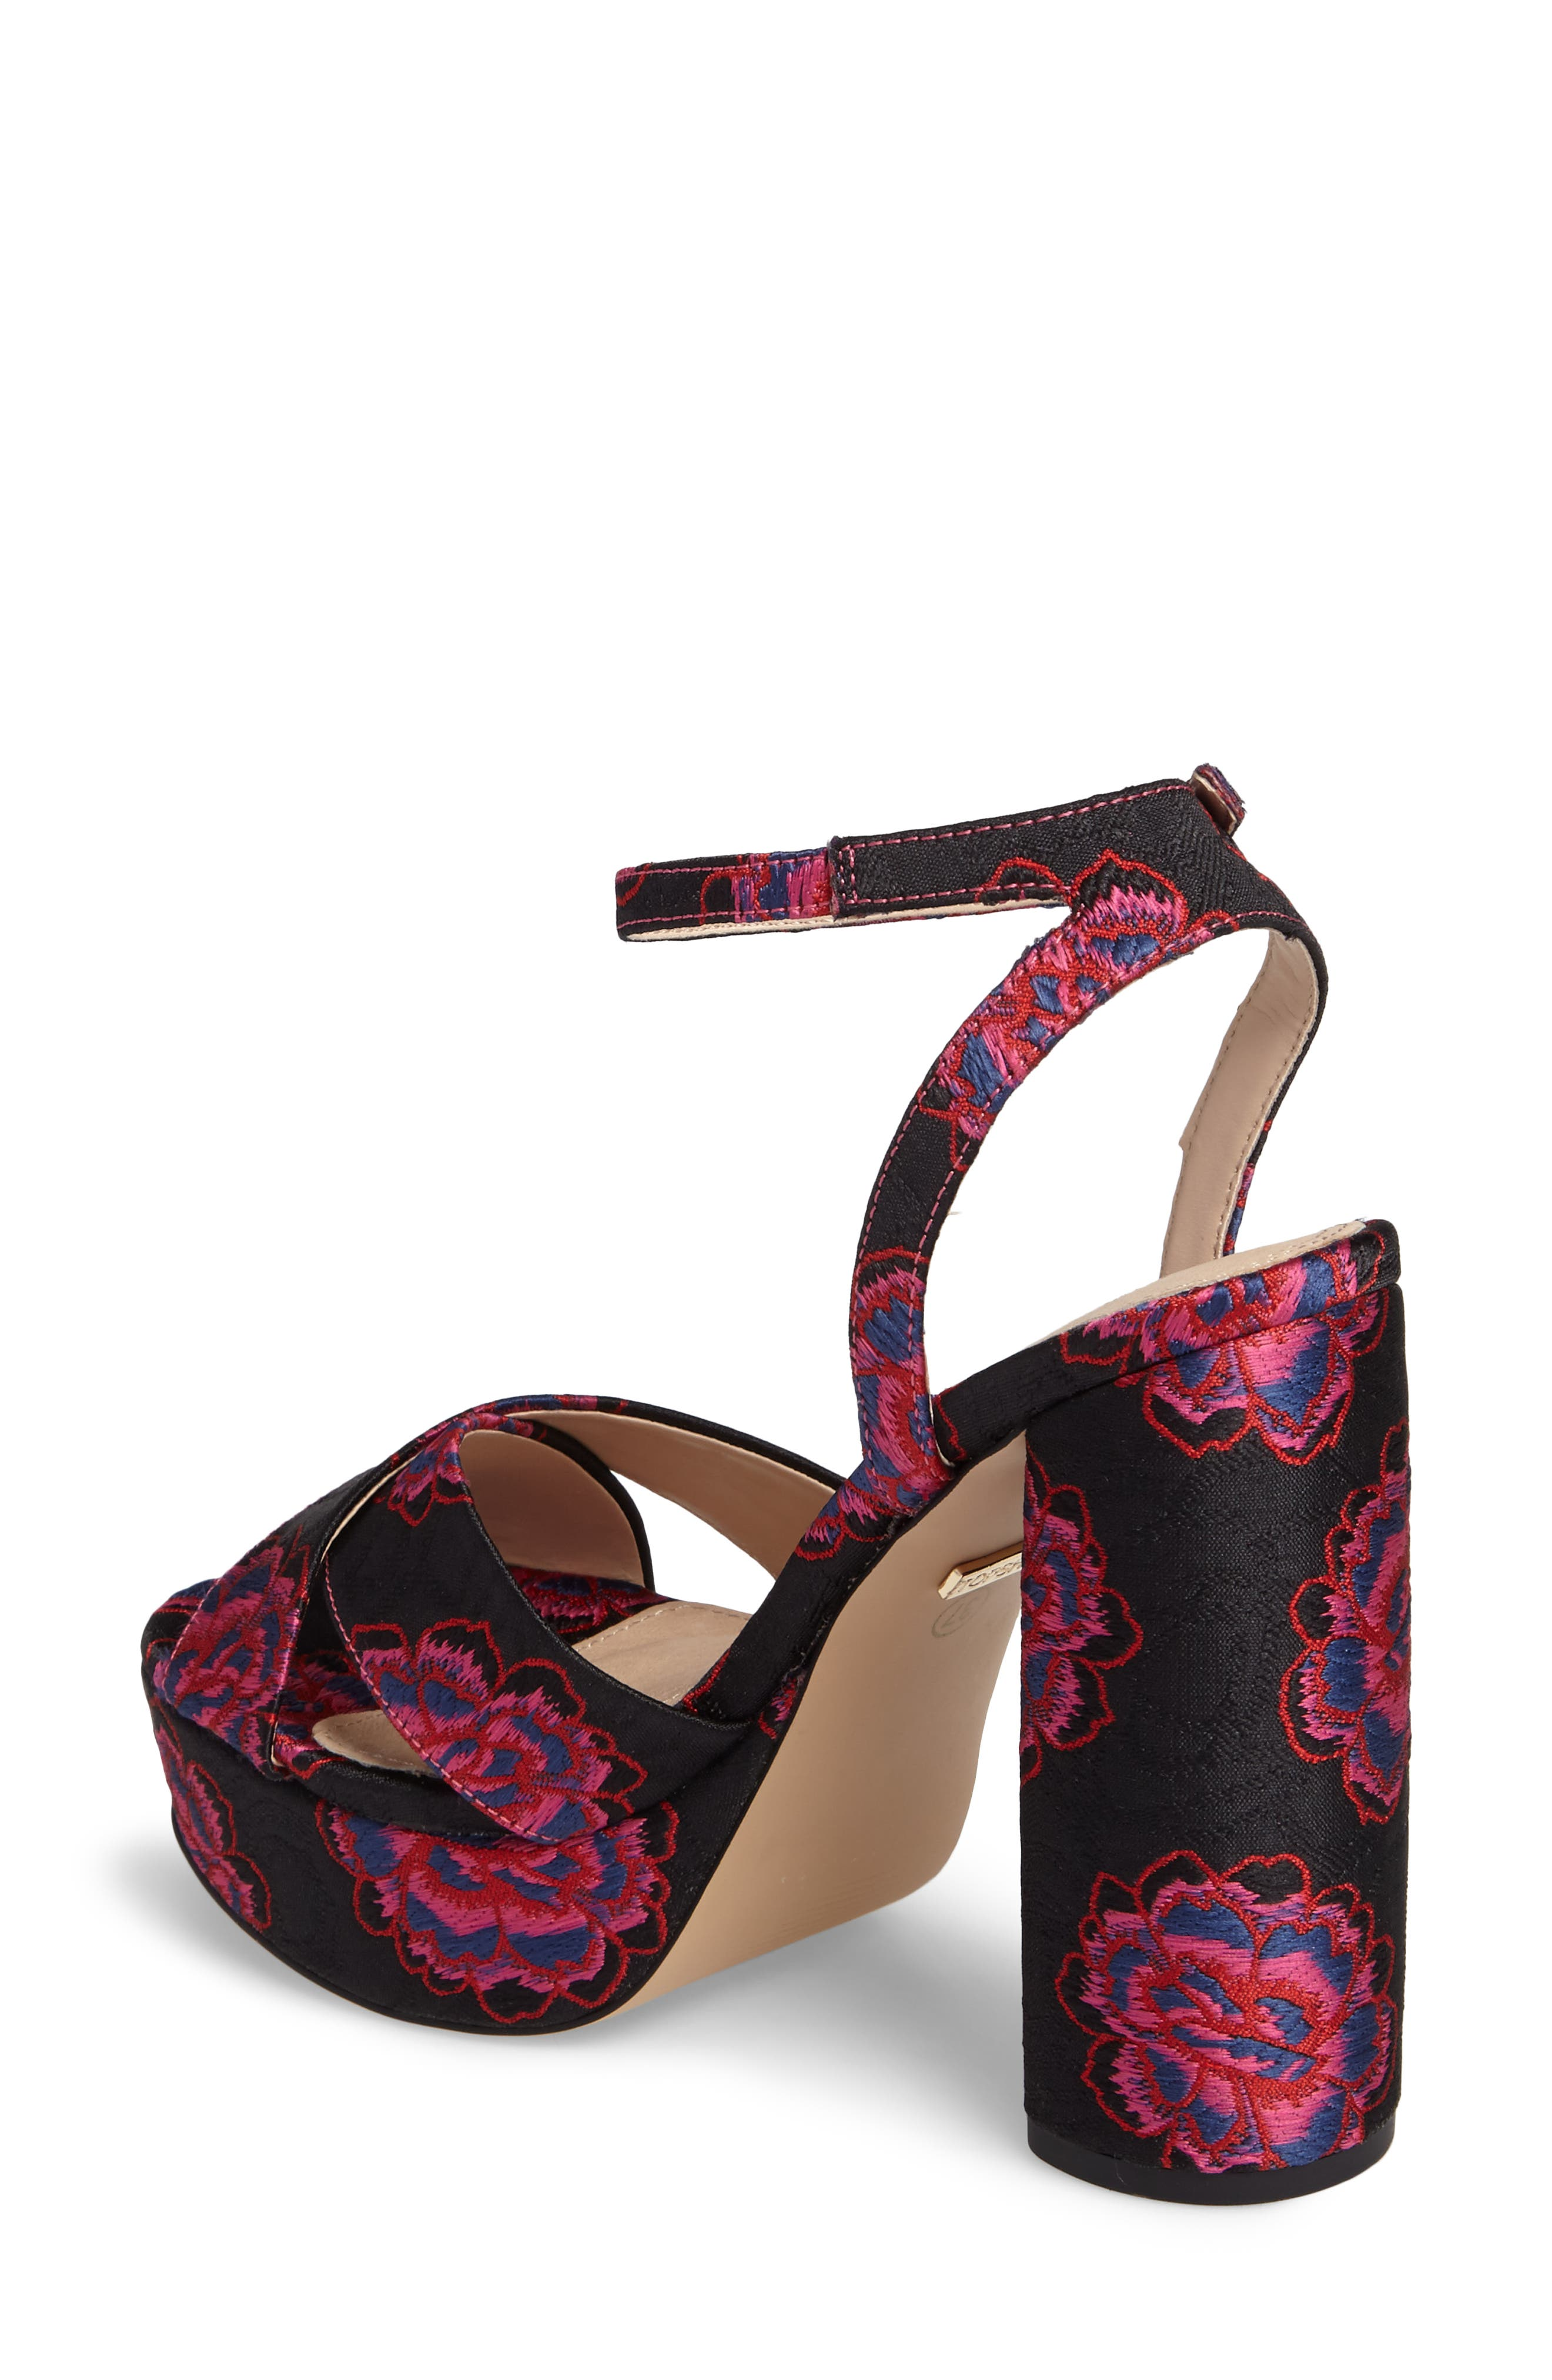 Lollie Embroidered Sandals,                             Alternate thumbnail 2, color,                             001